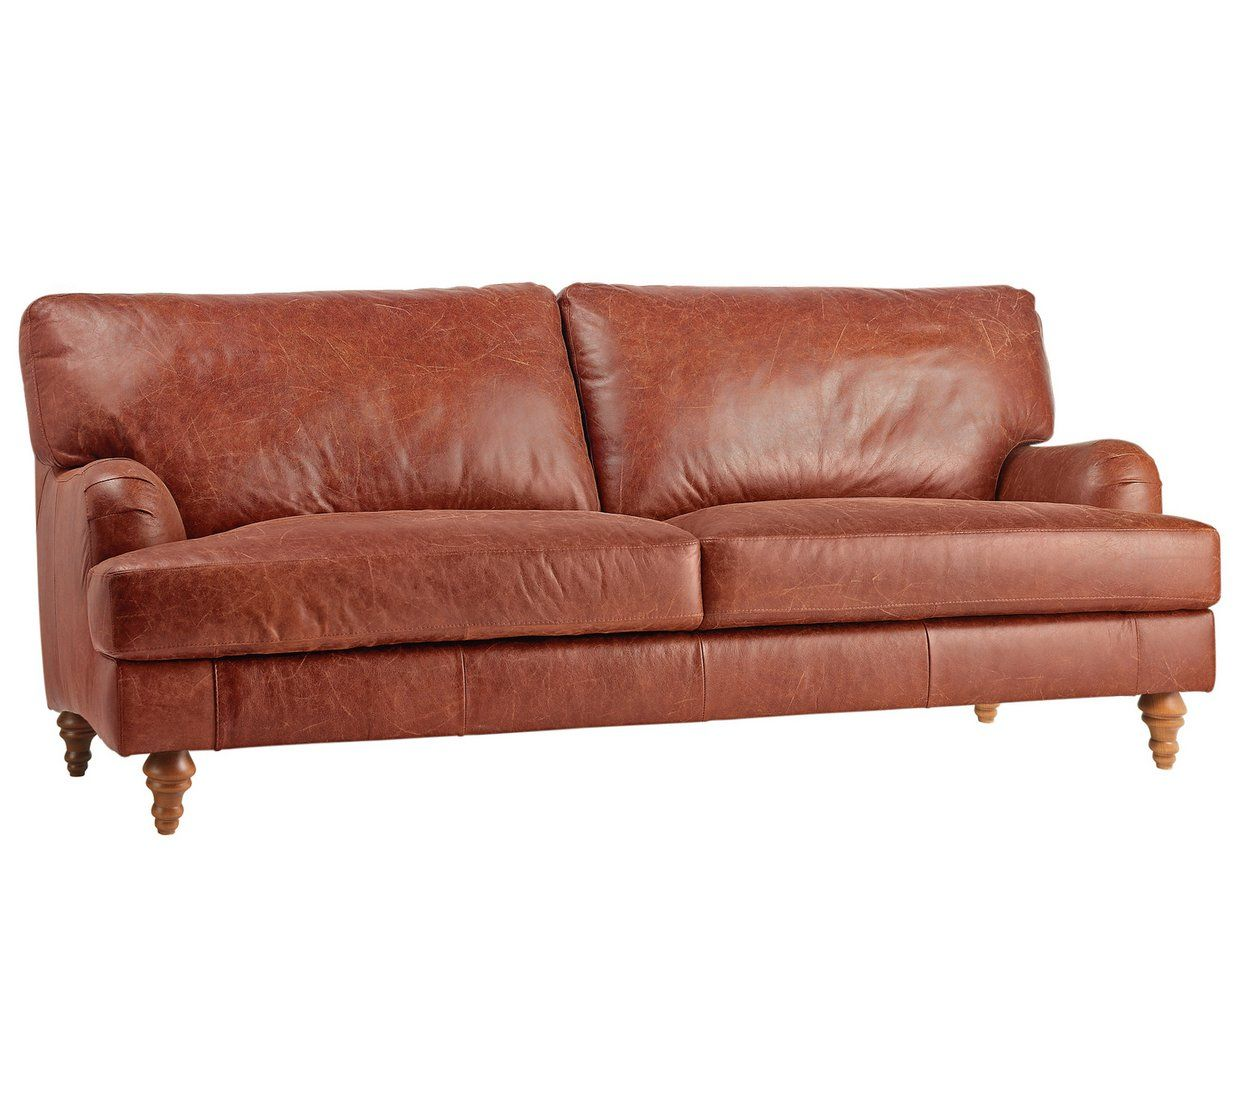 Phenomenal Buy Argos Home Livingston 3 Seater Leather Sofa Tan Download Free Architecture Designs Terstmadebymaigaardcom